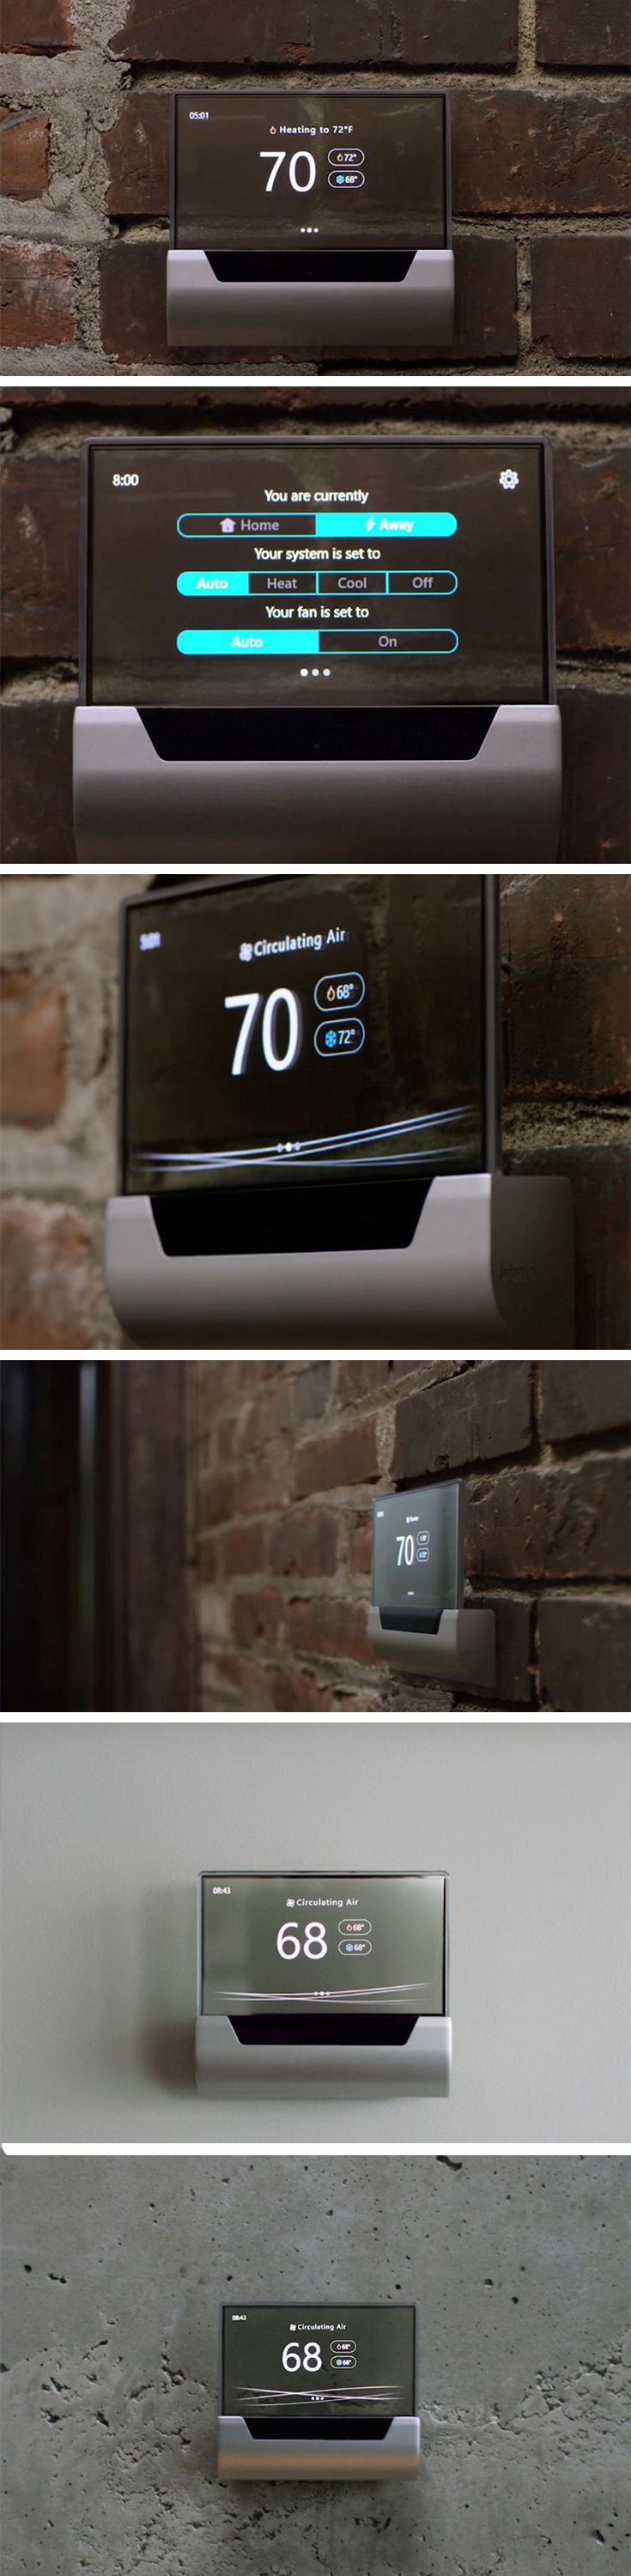 The GLAS by Microsoft and Johnson Controls redefines what home appliances must look like, along with what they're capable of. Made to look as pretty as a picture, the GLAS features a translucent touch-screen display that delights the heart with the way it showcases your wall behind it.